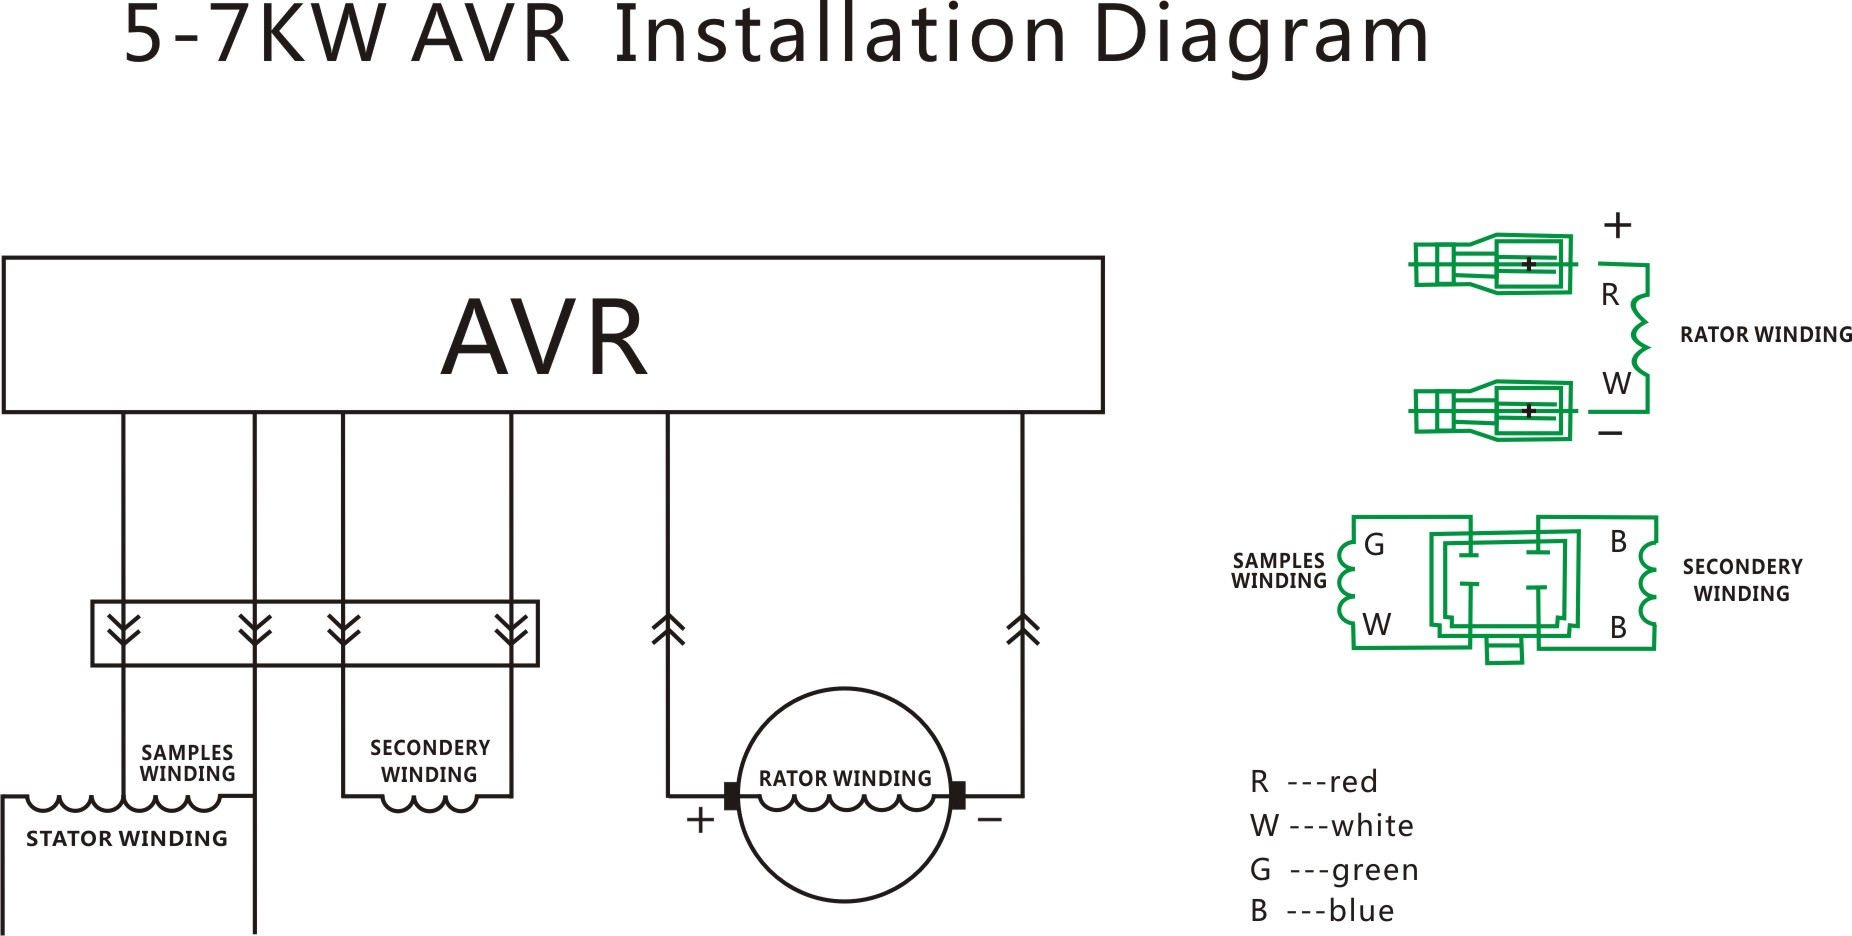 What Is 5-7kw Avr